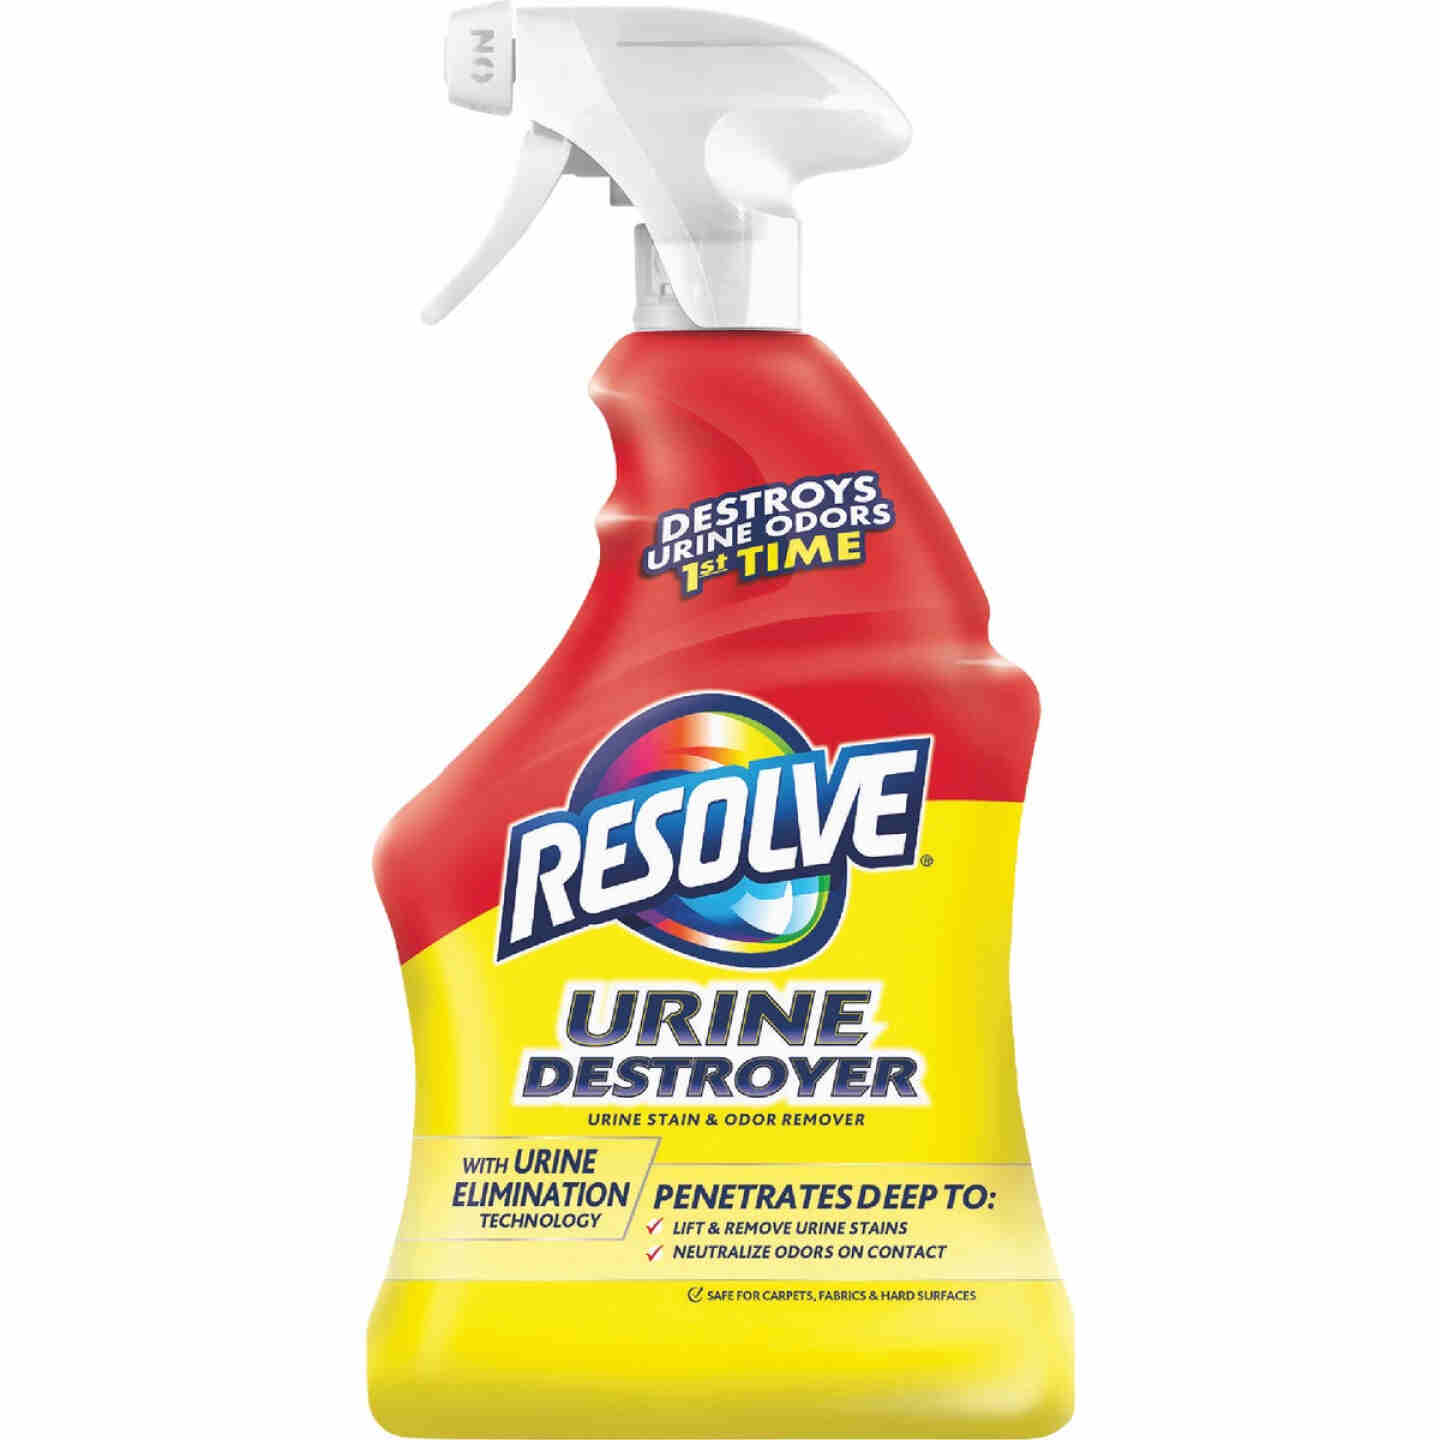 Resolve 22 Oz. Urine Destroyer Stain & Odor Remover Image 1